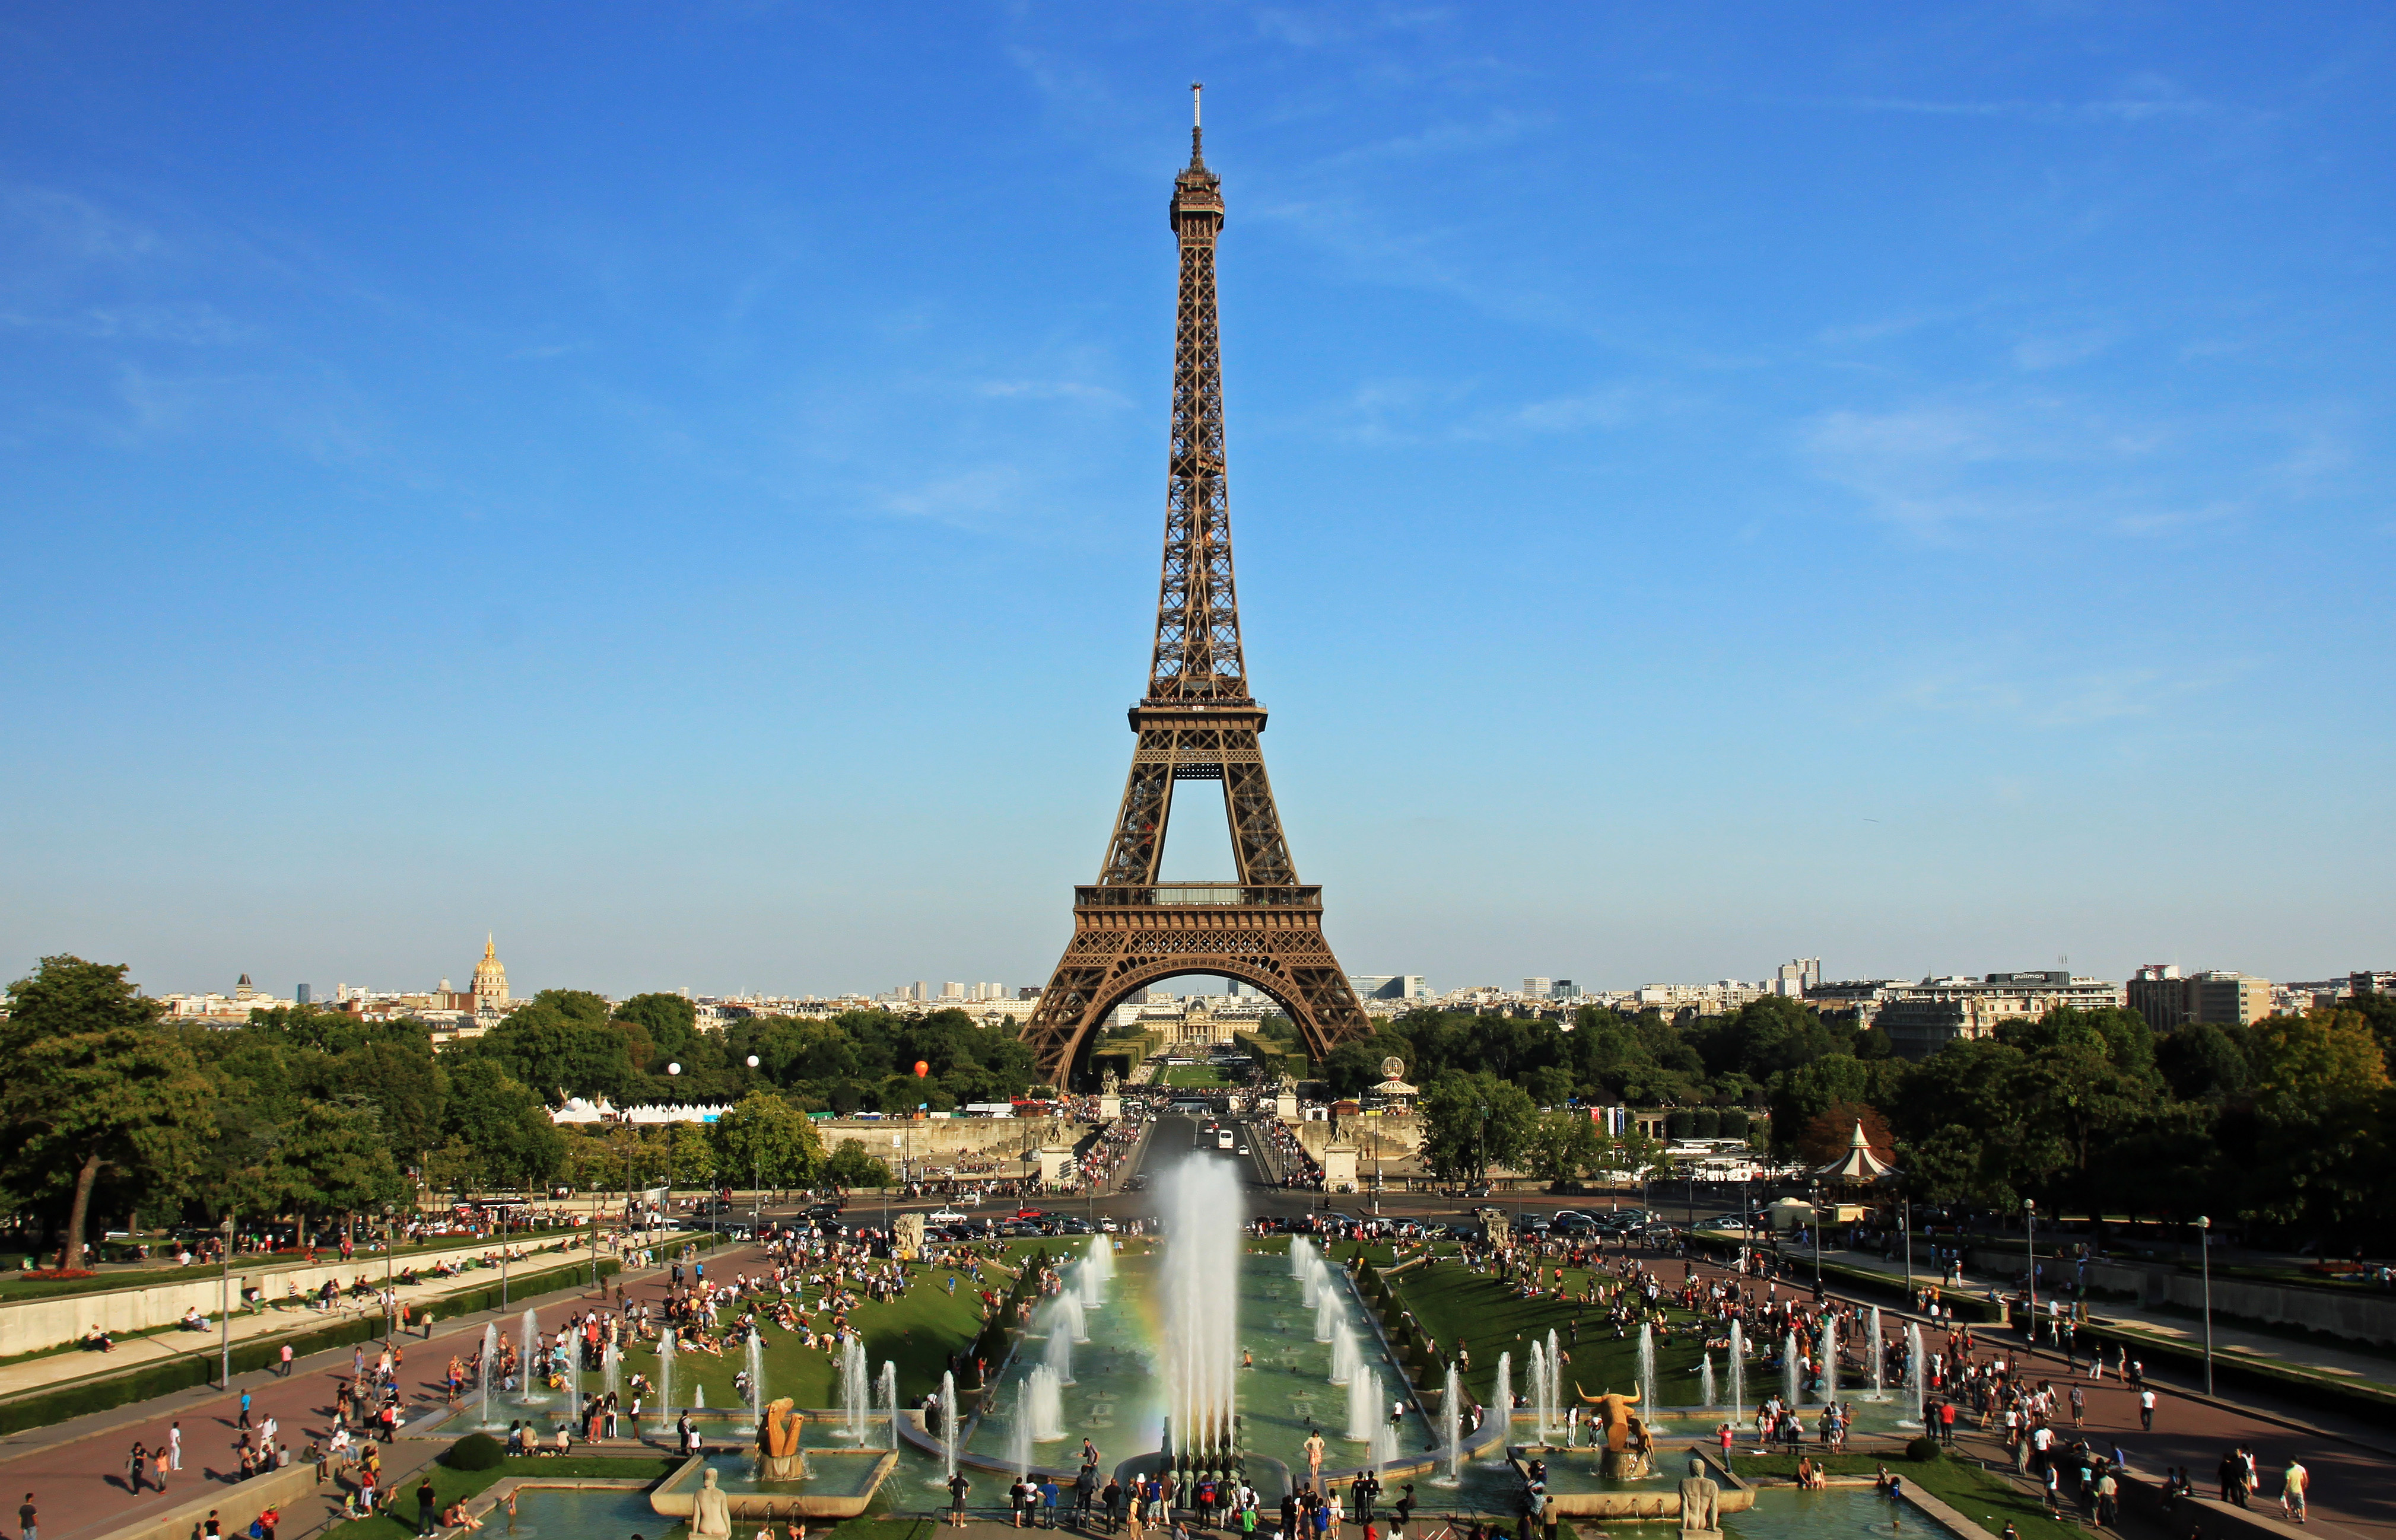 Eiffel Tower And Notre Dame Which One To Visit First